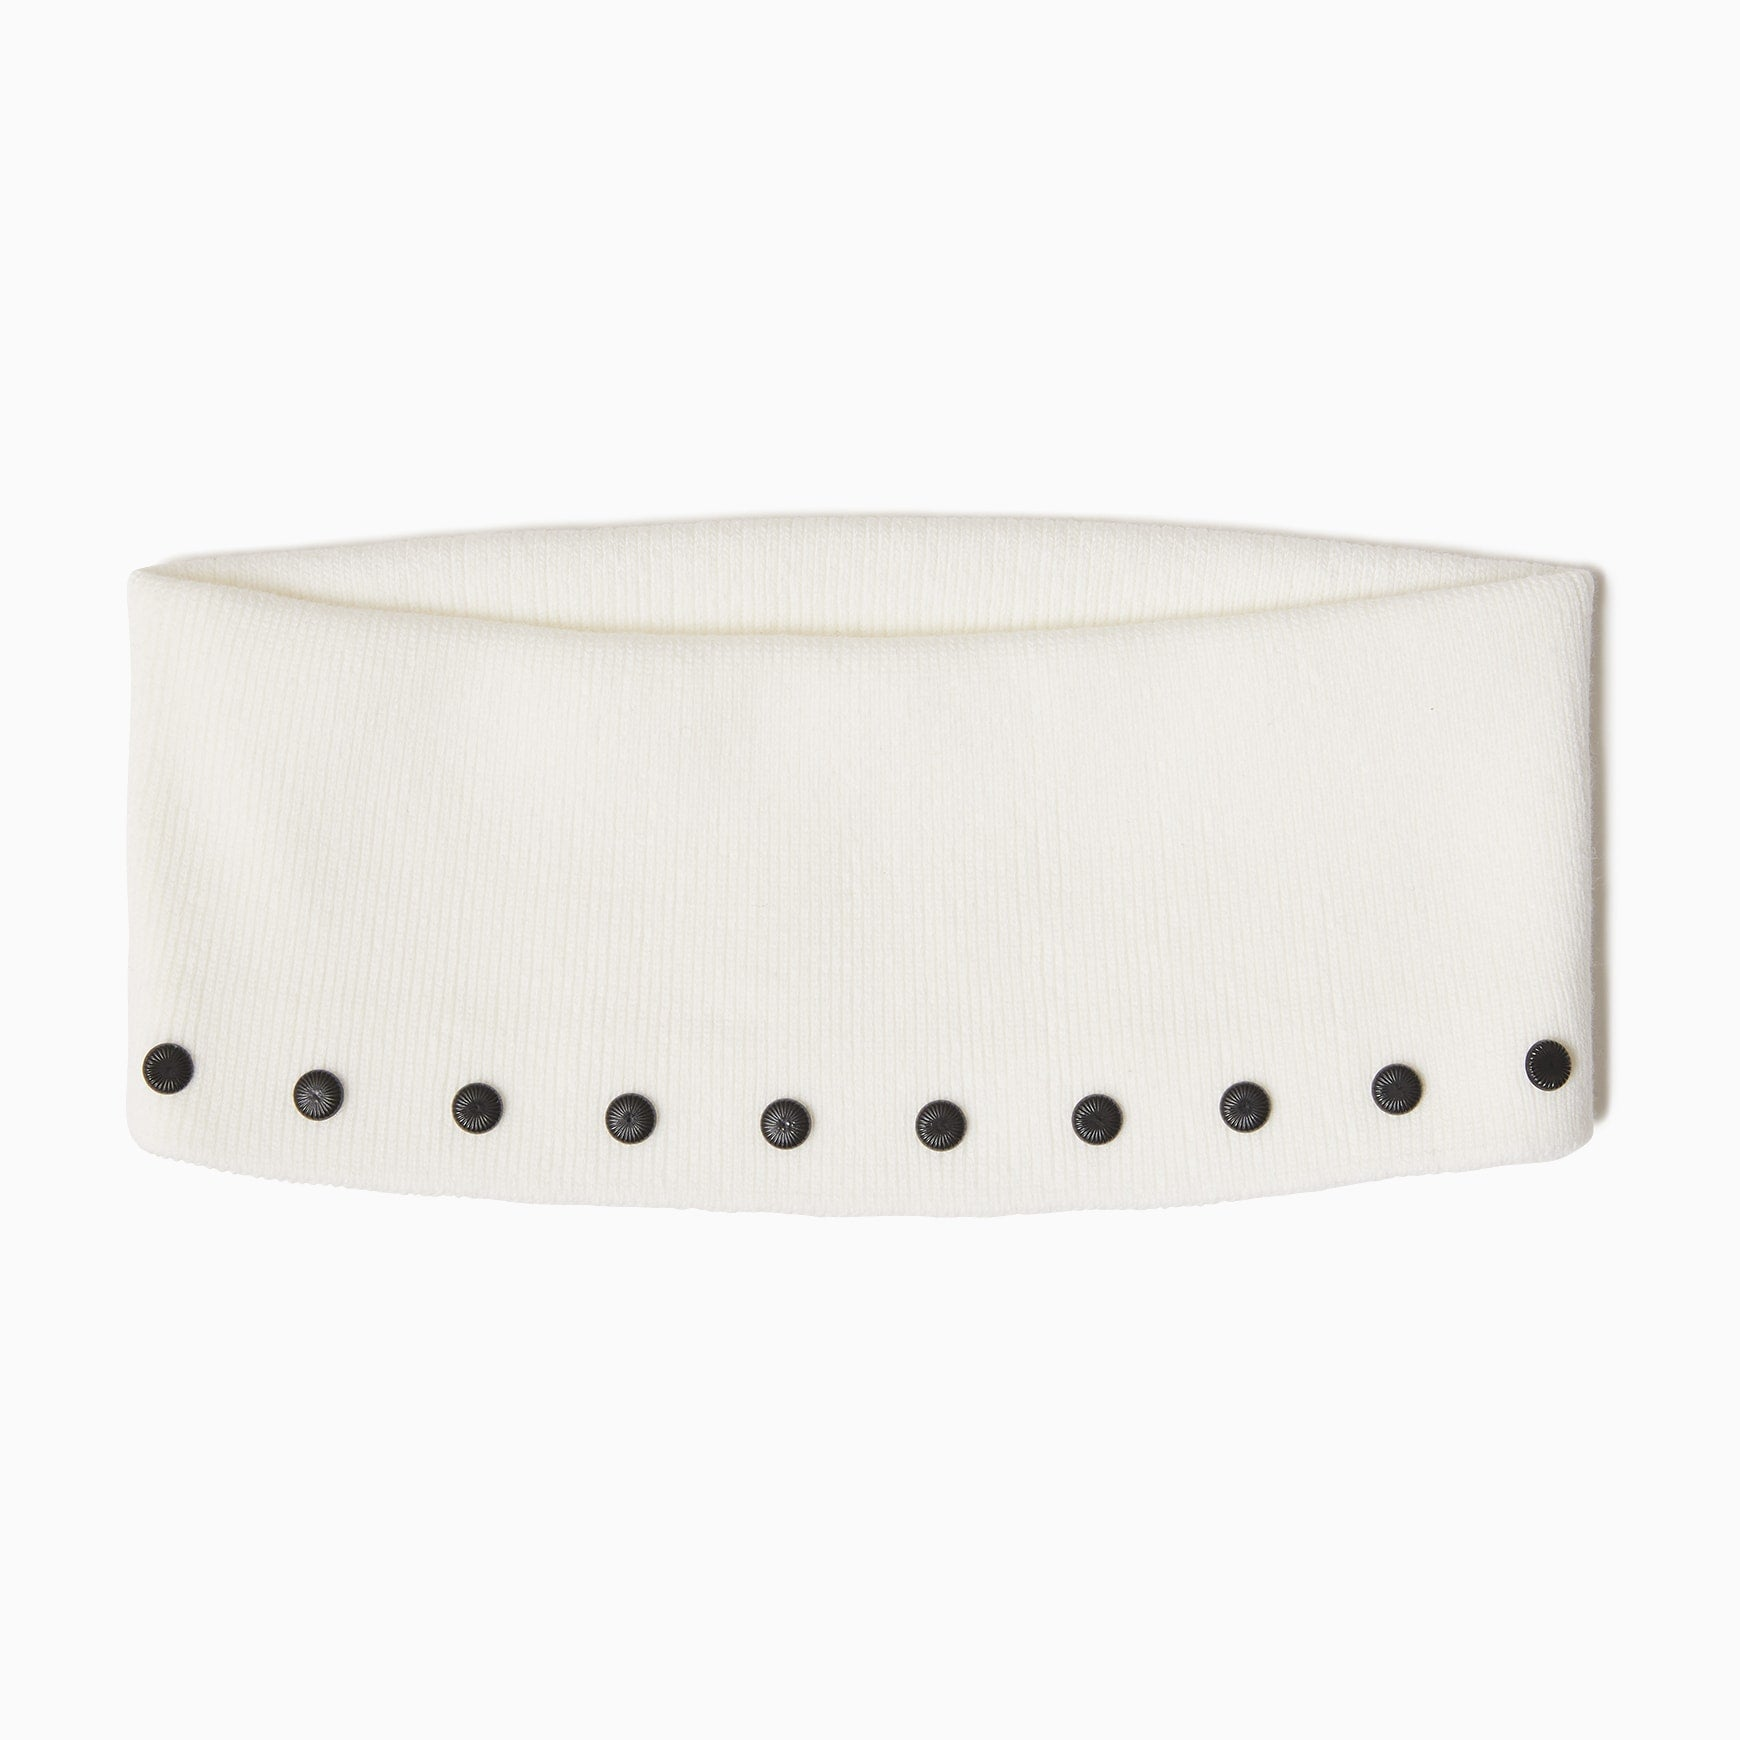 TYPE-1 Knit Organic Cotton Turtle Neck Collar Part (White)